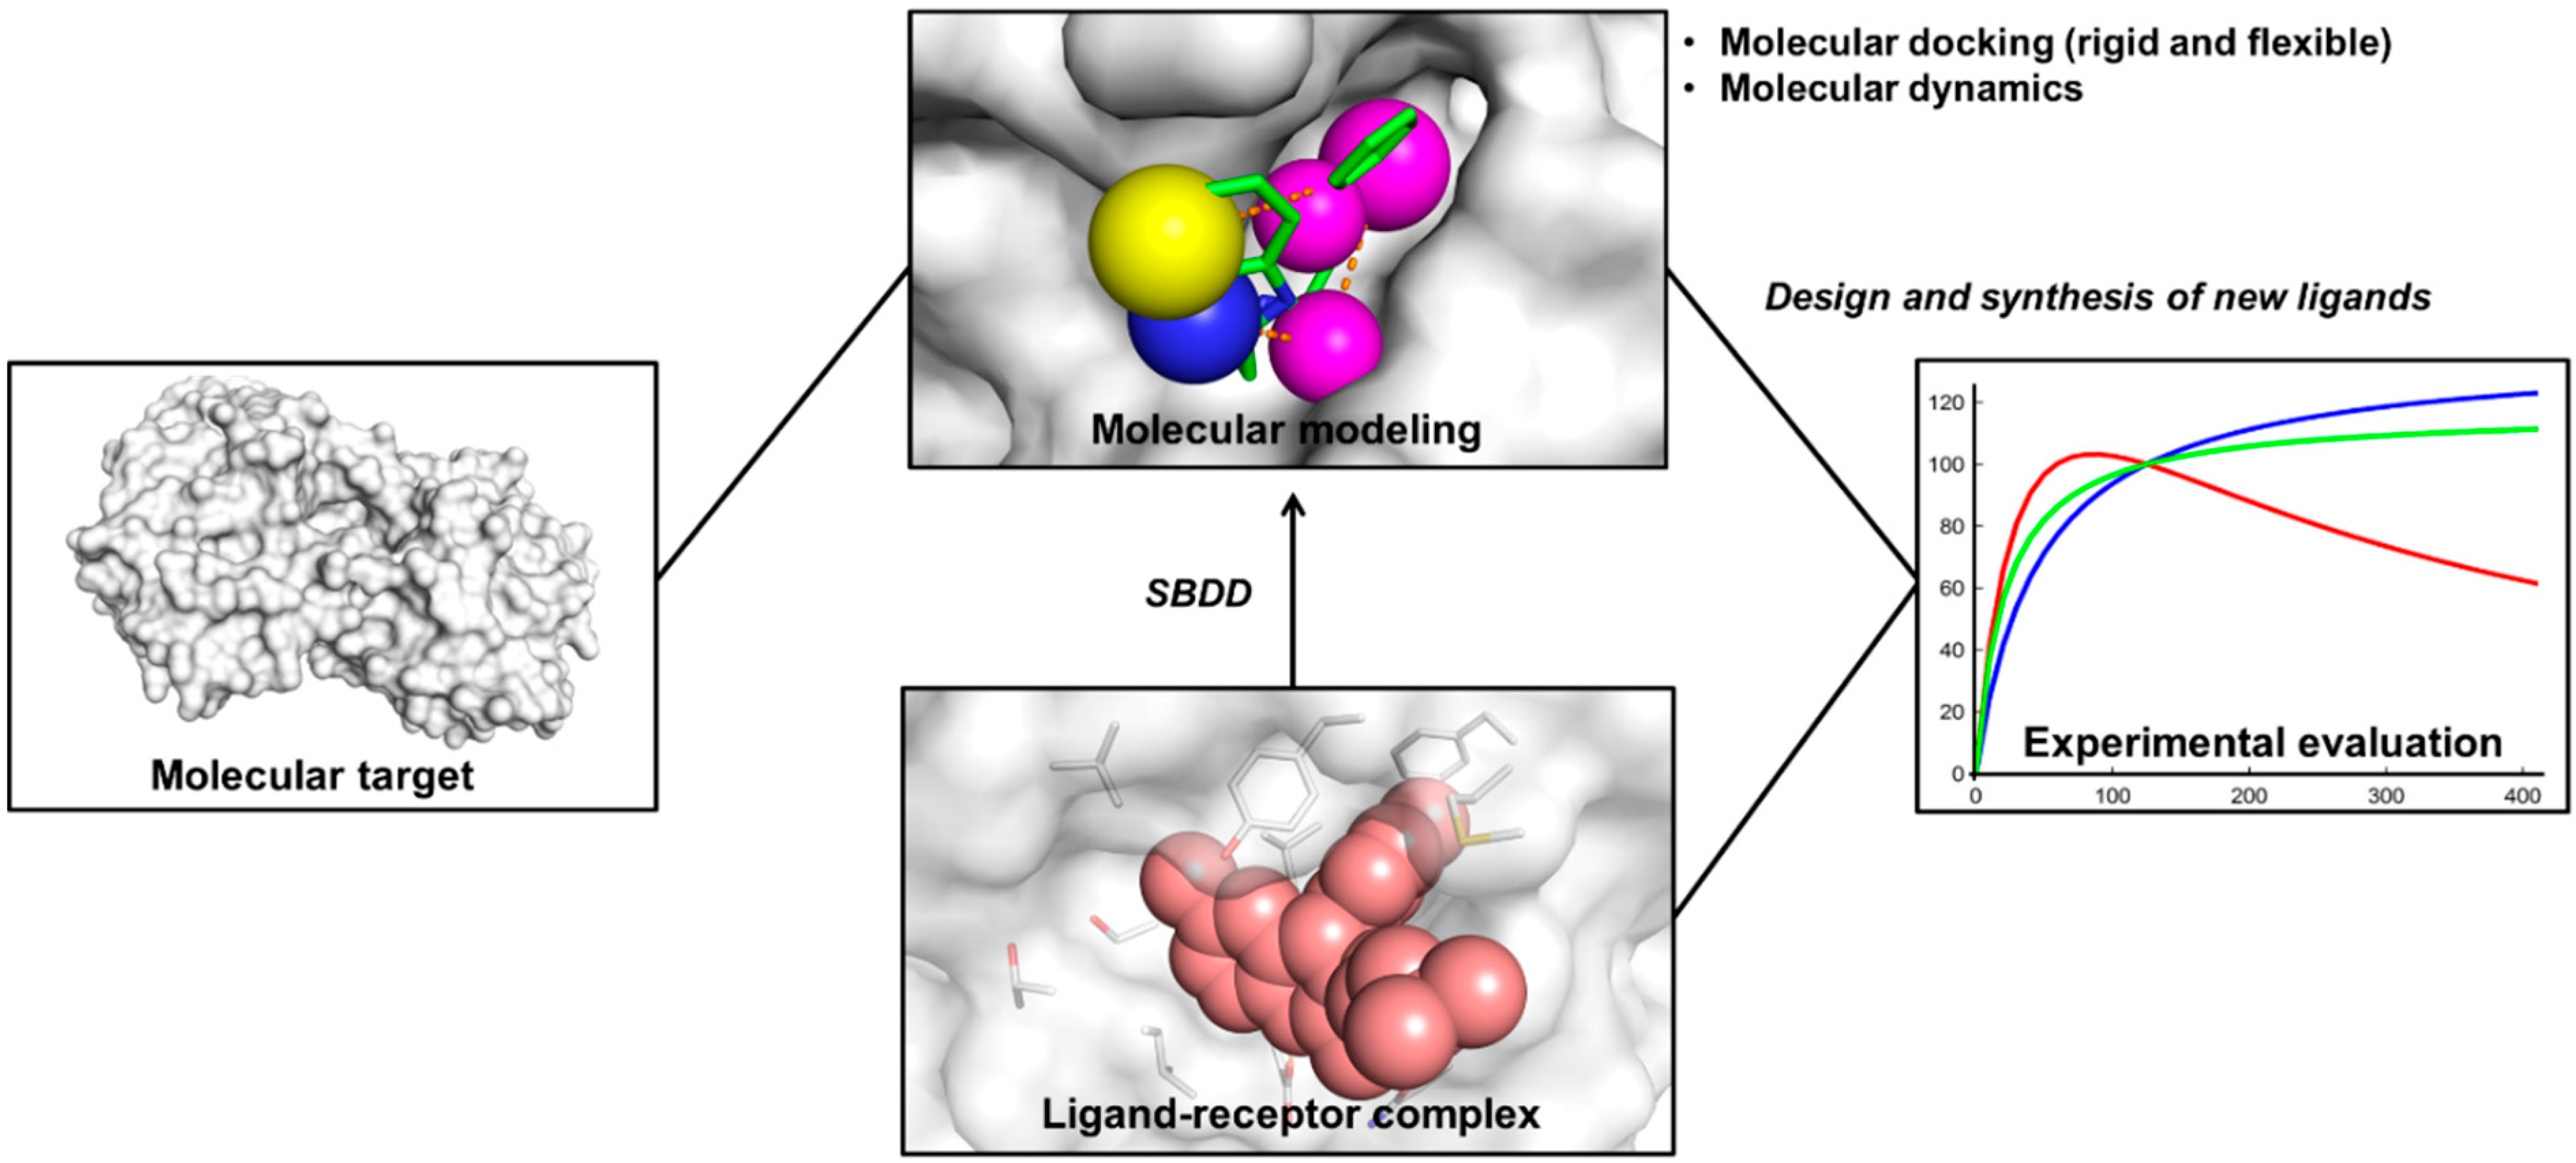 Molecules Free Full Text Molecular Docking And Structure Based Drug Design Strategies Html